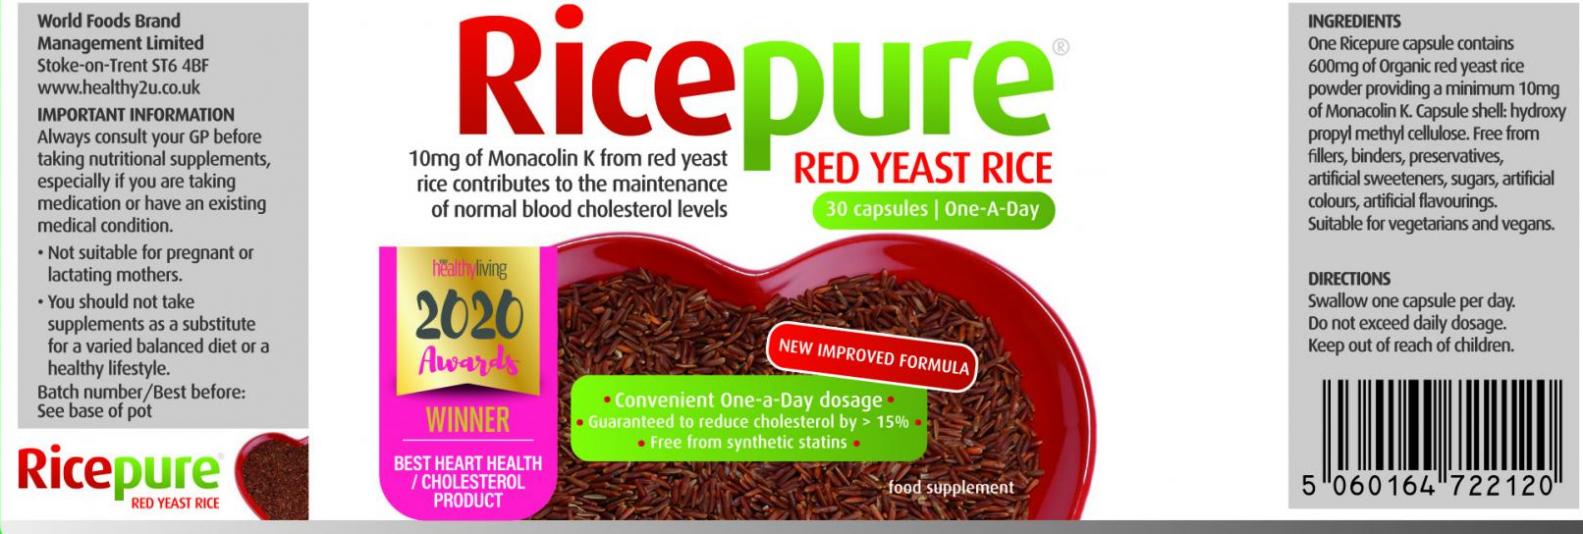 Red Yeast Rice One-a-Day 30's